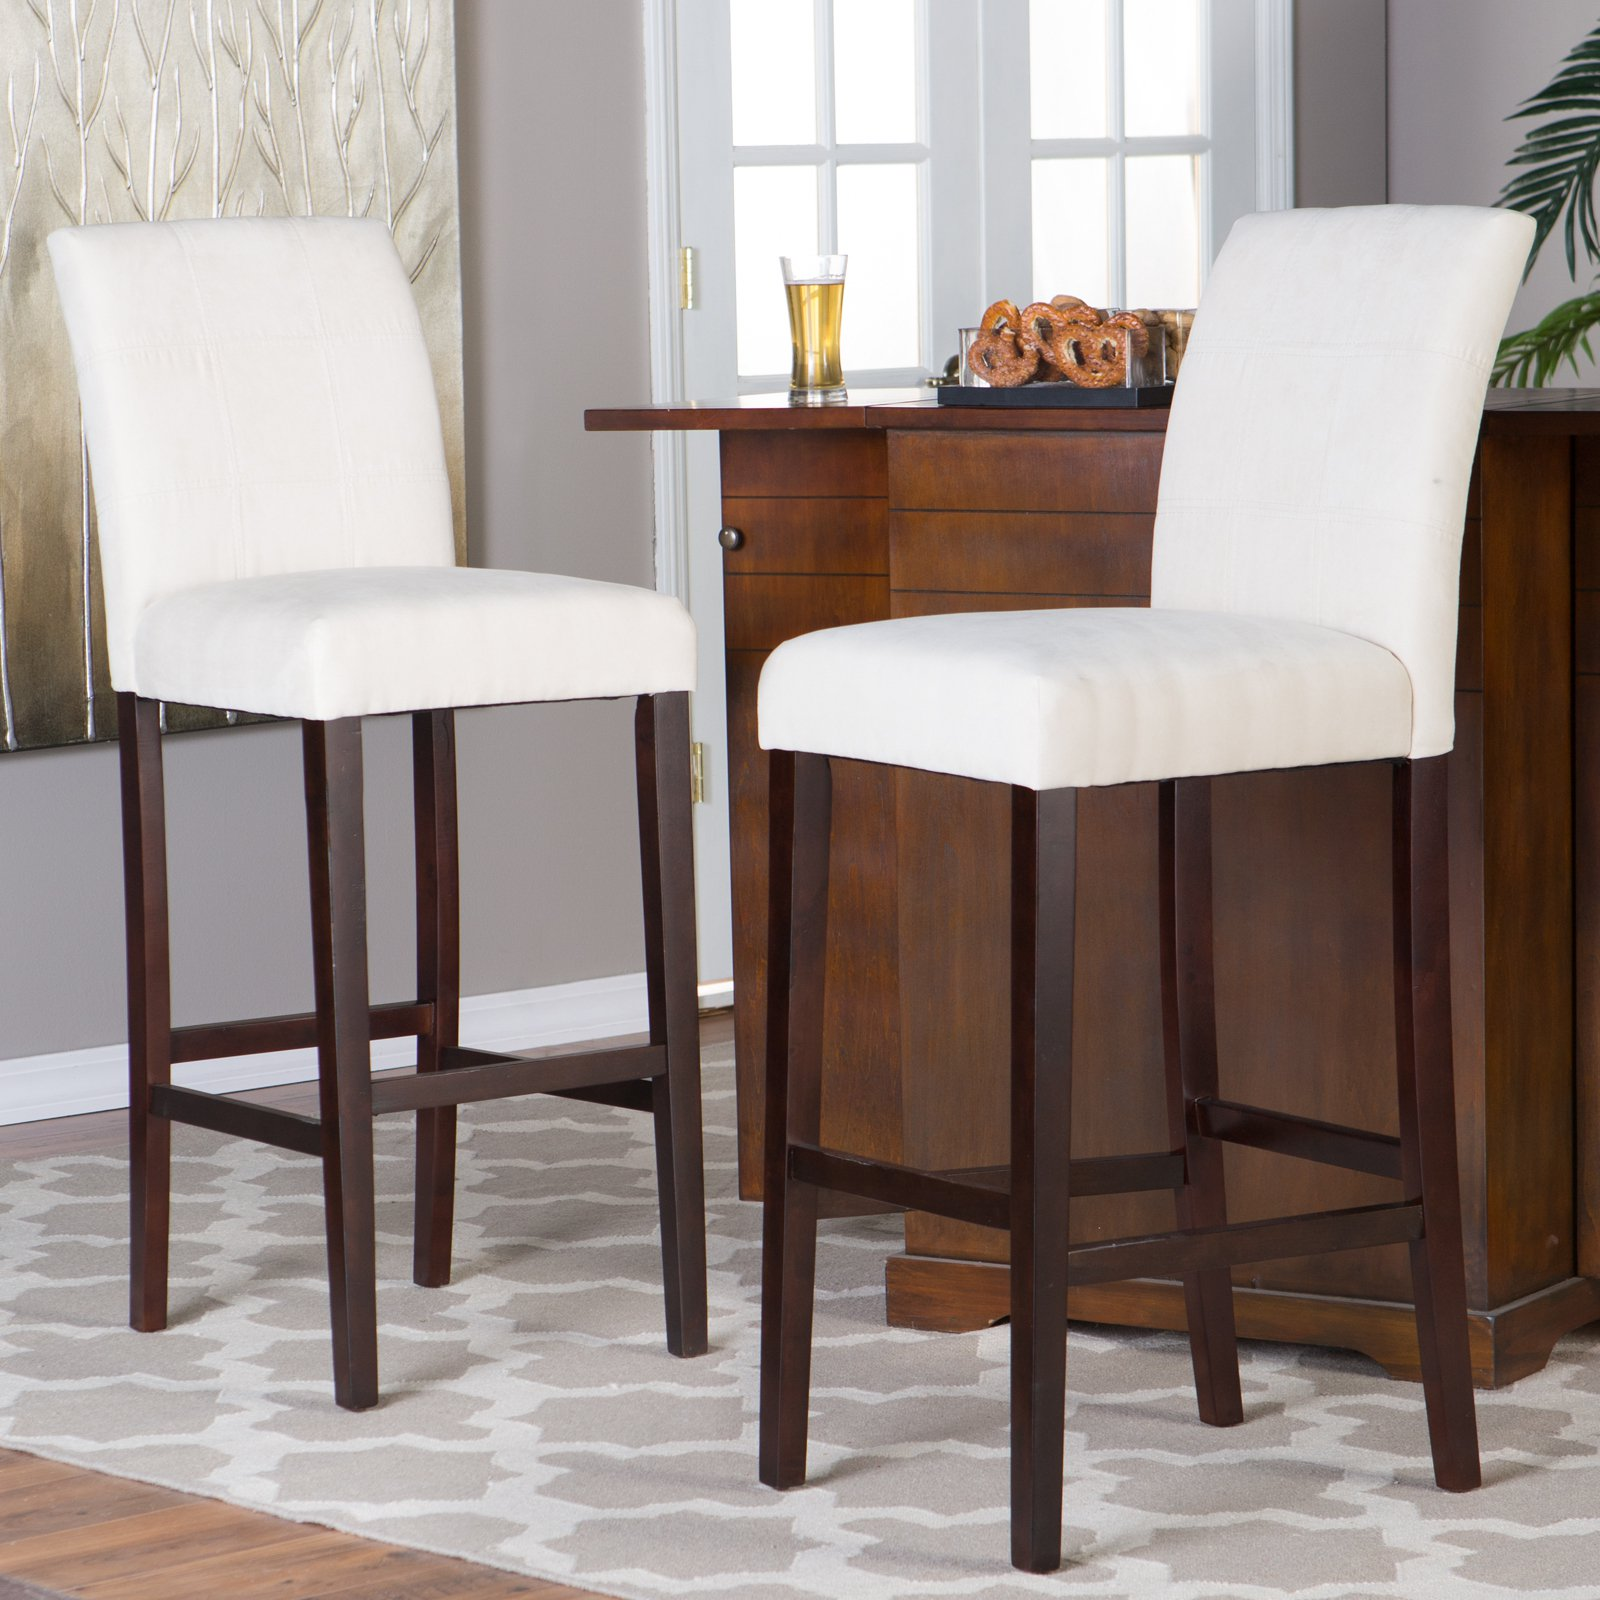 high bar stool chairs chair covers for hire perth finley home palazzo extra tall set of 2 walmart com